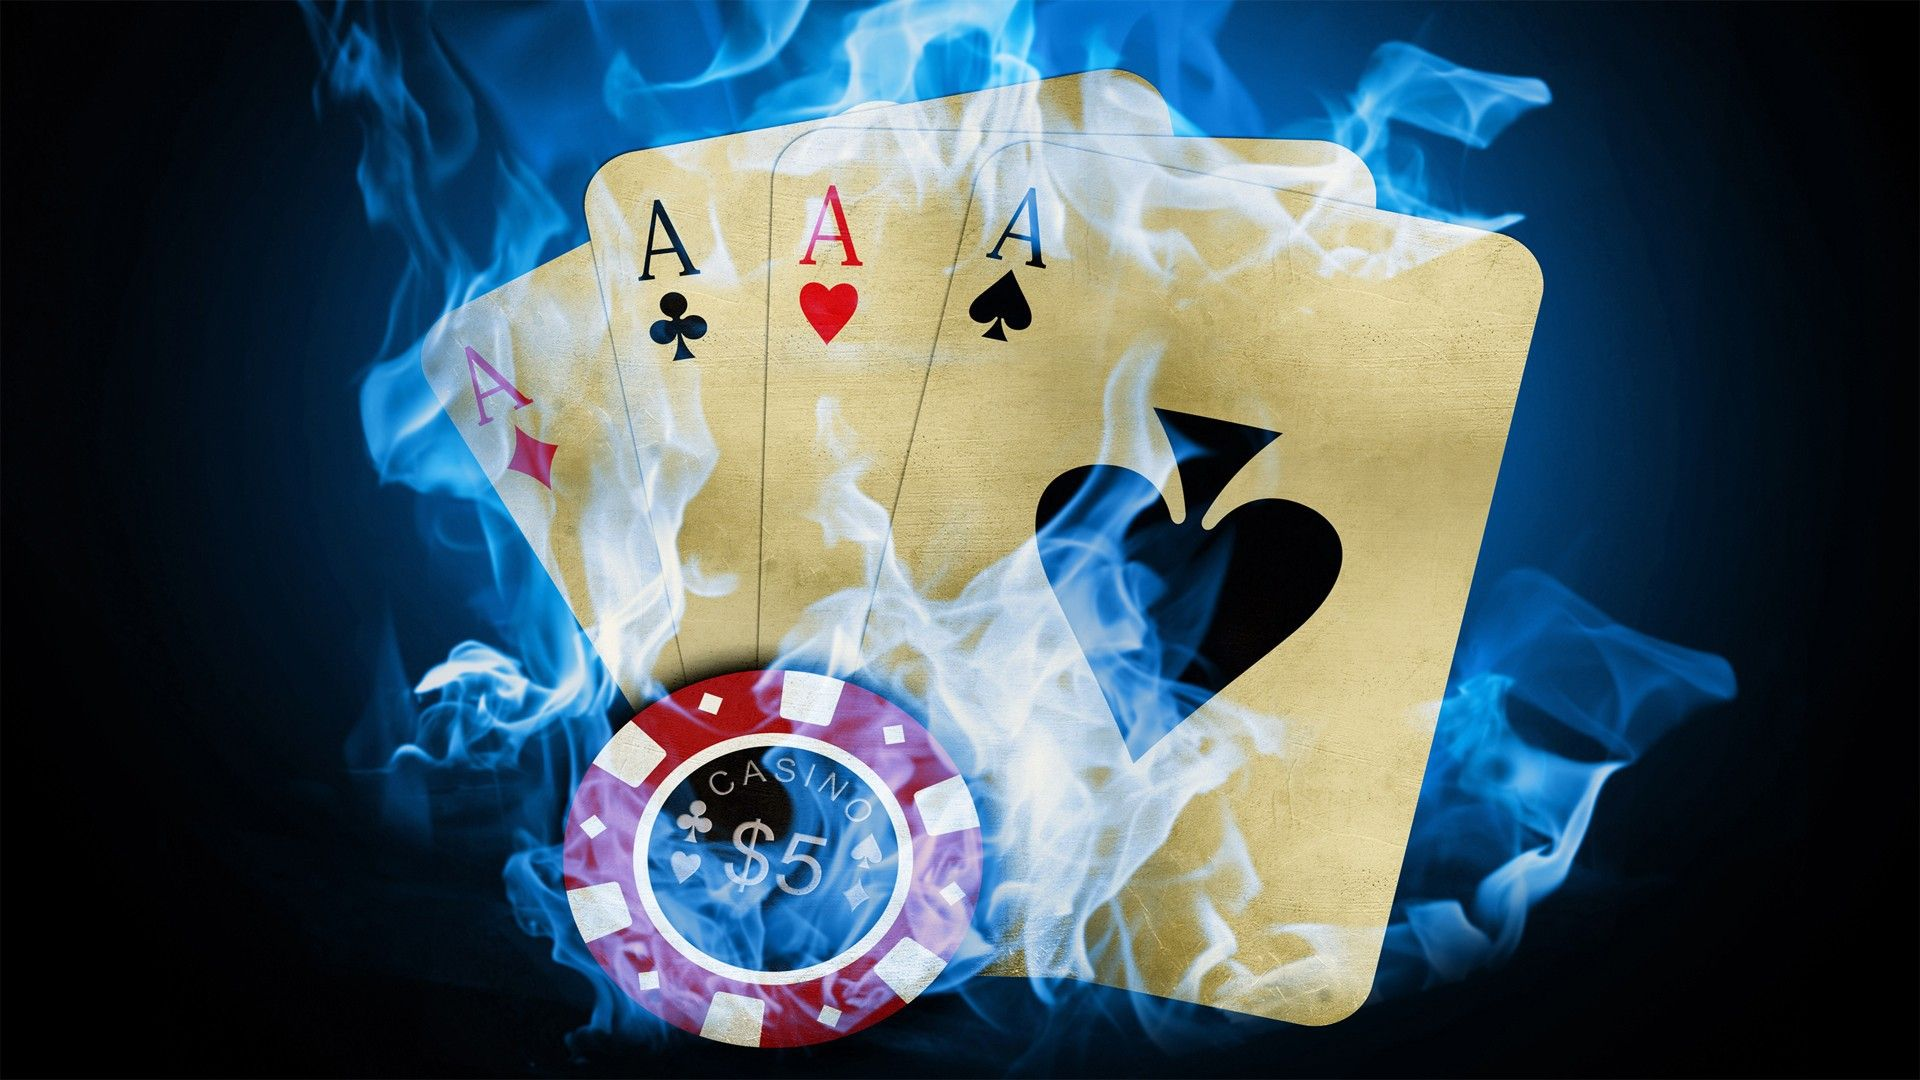 Our casino is a platform that allows you to access the most prominent online casinos in Korea